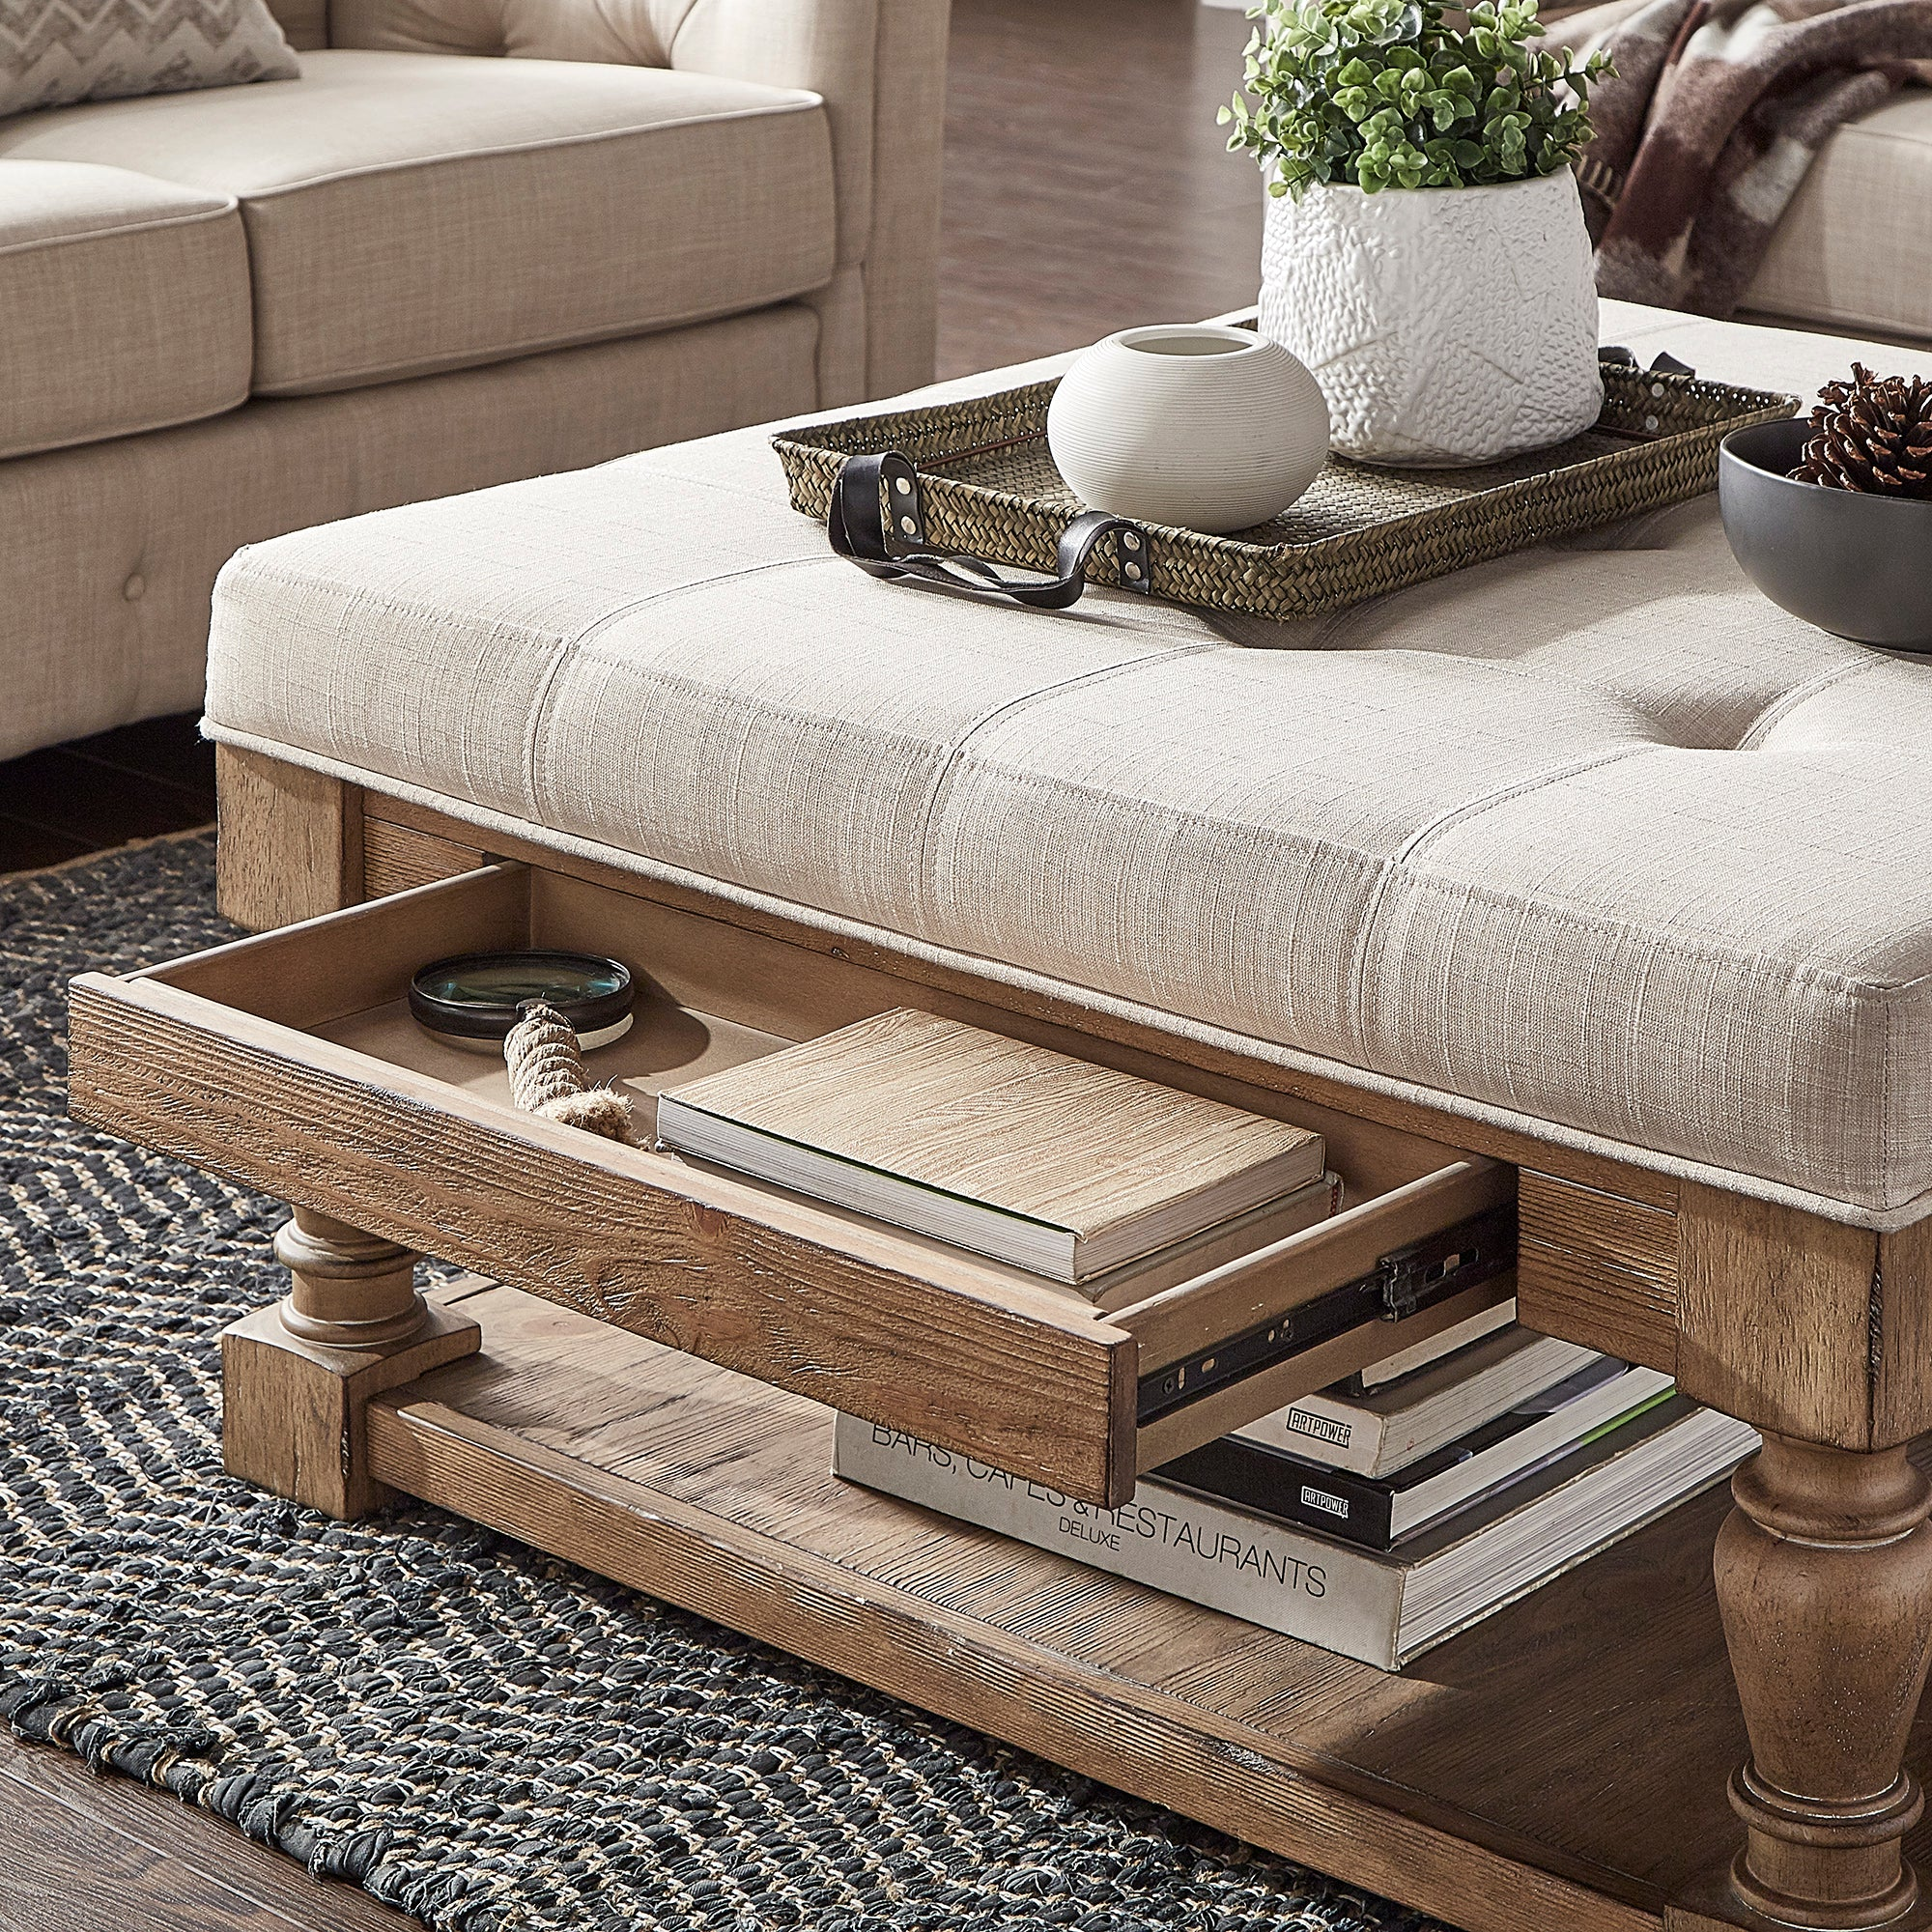 Baluster Pine Storage Tufted Cocktail Ottoman - Beige Linen - Dimpled Tufts